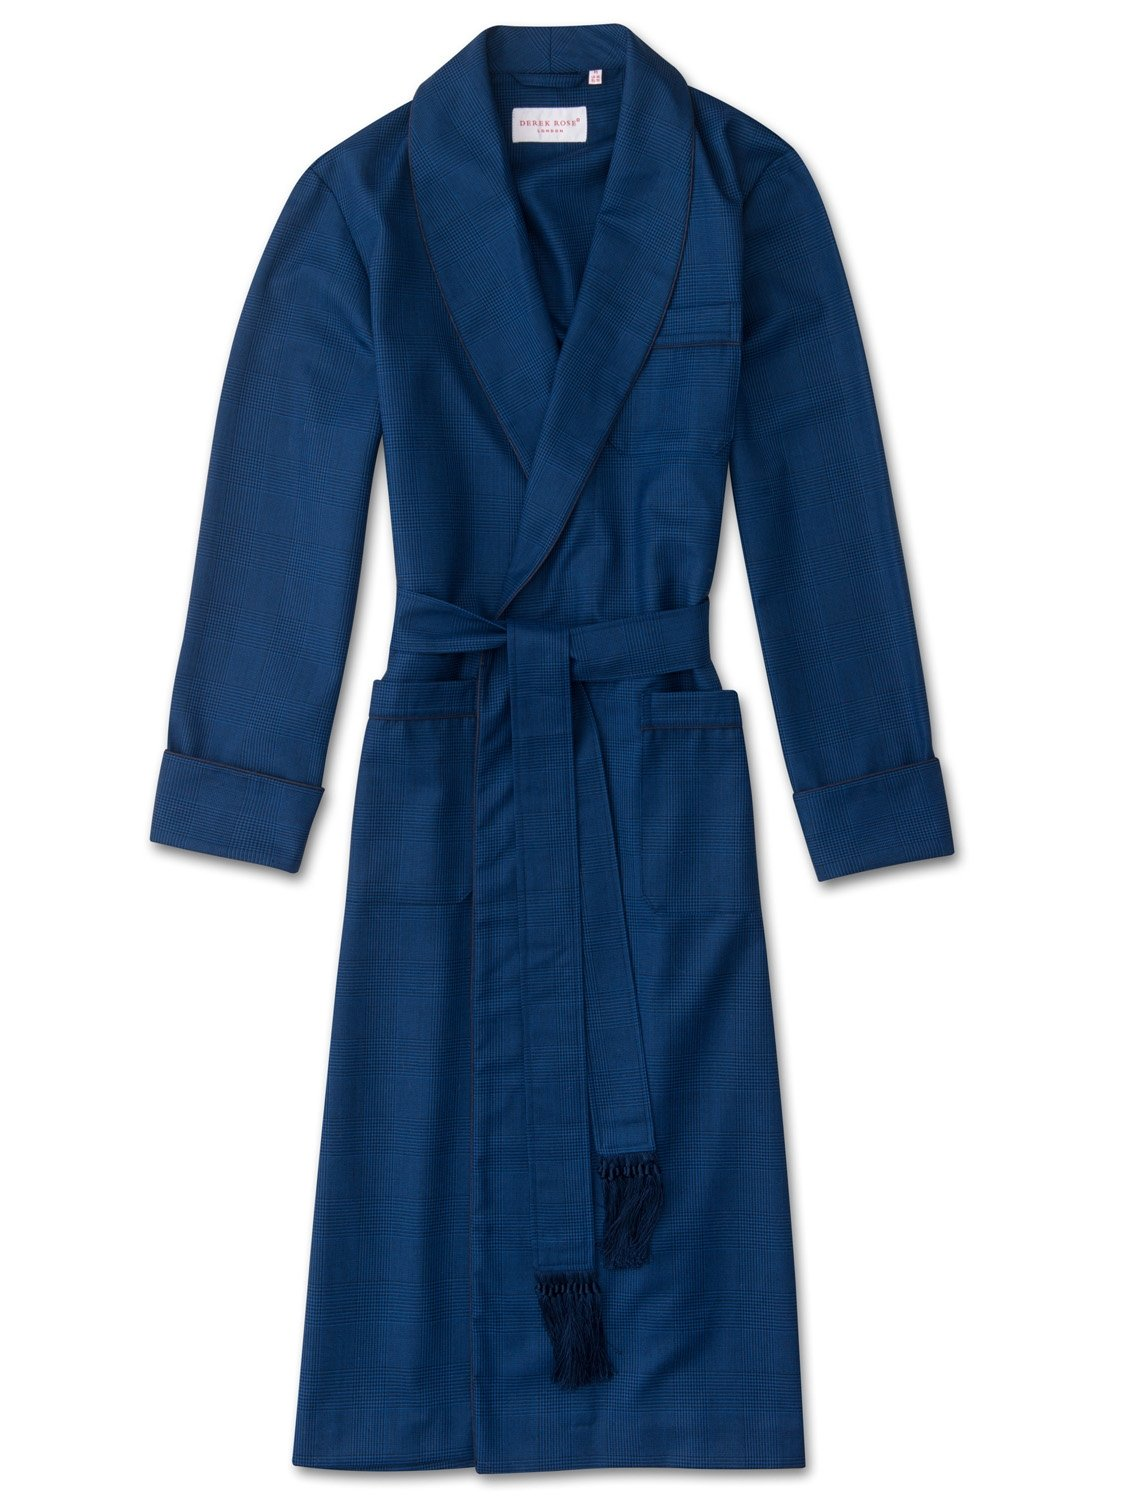 Men's Tasseled Belt Dressing Gown York 34 Pure Wool Check Blue